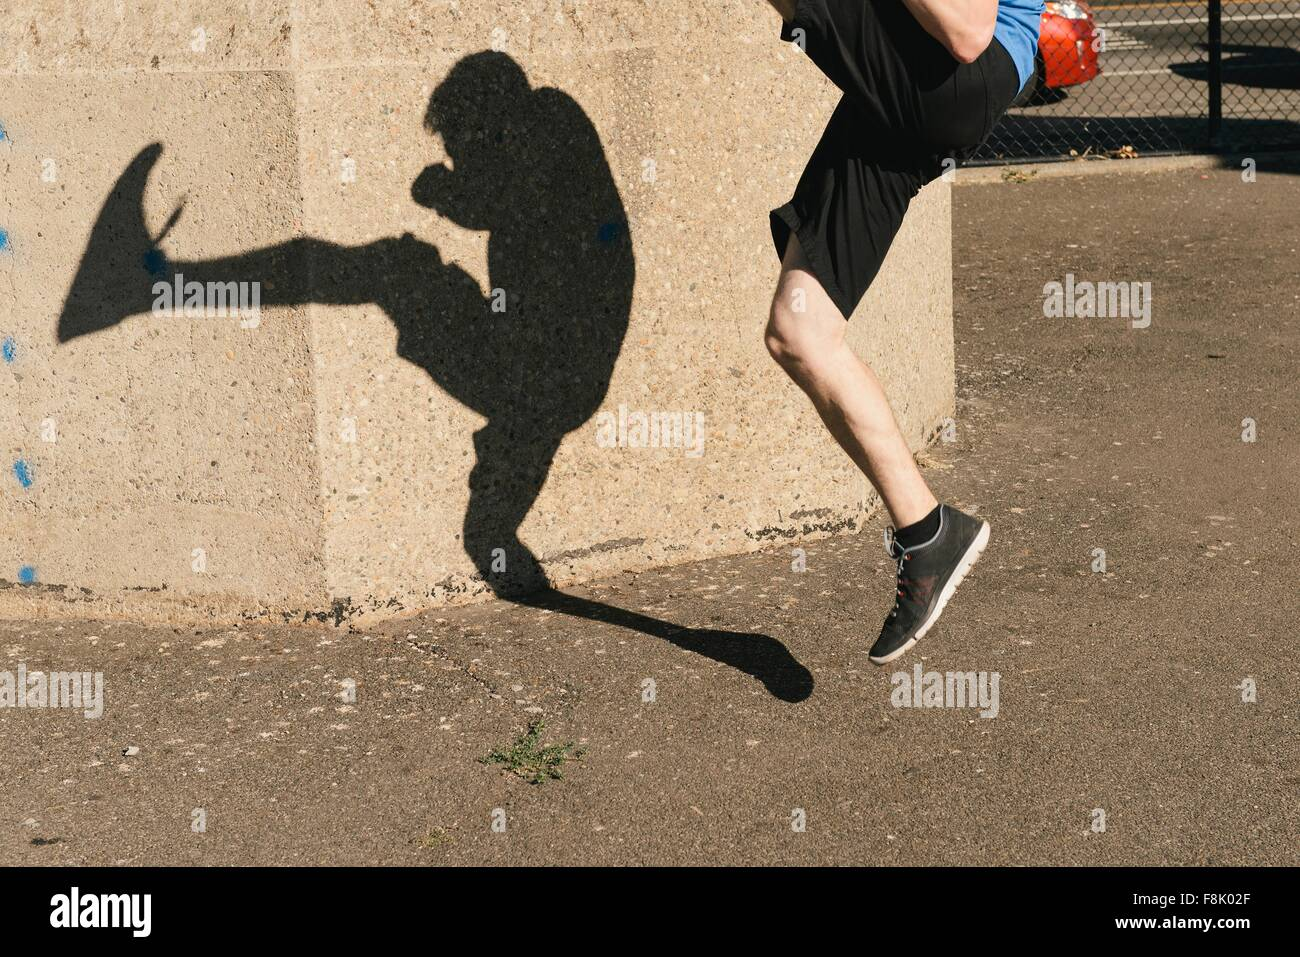 Young man shadow kickboxing, outdoors - Stock Image